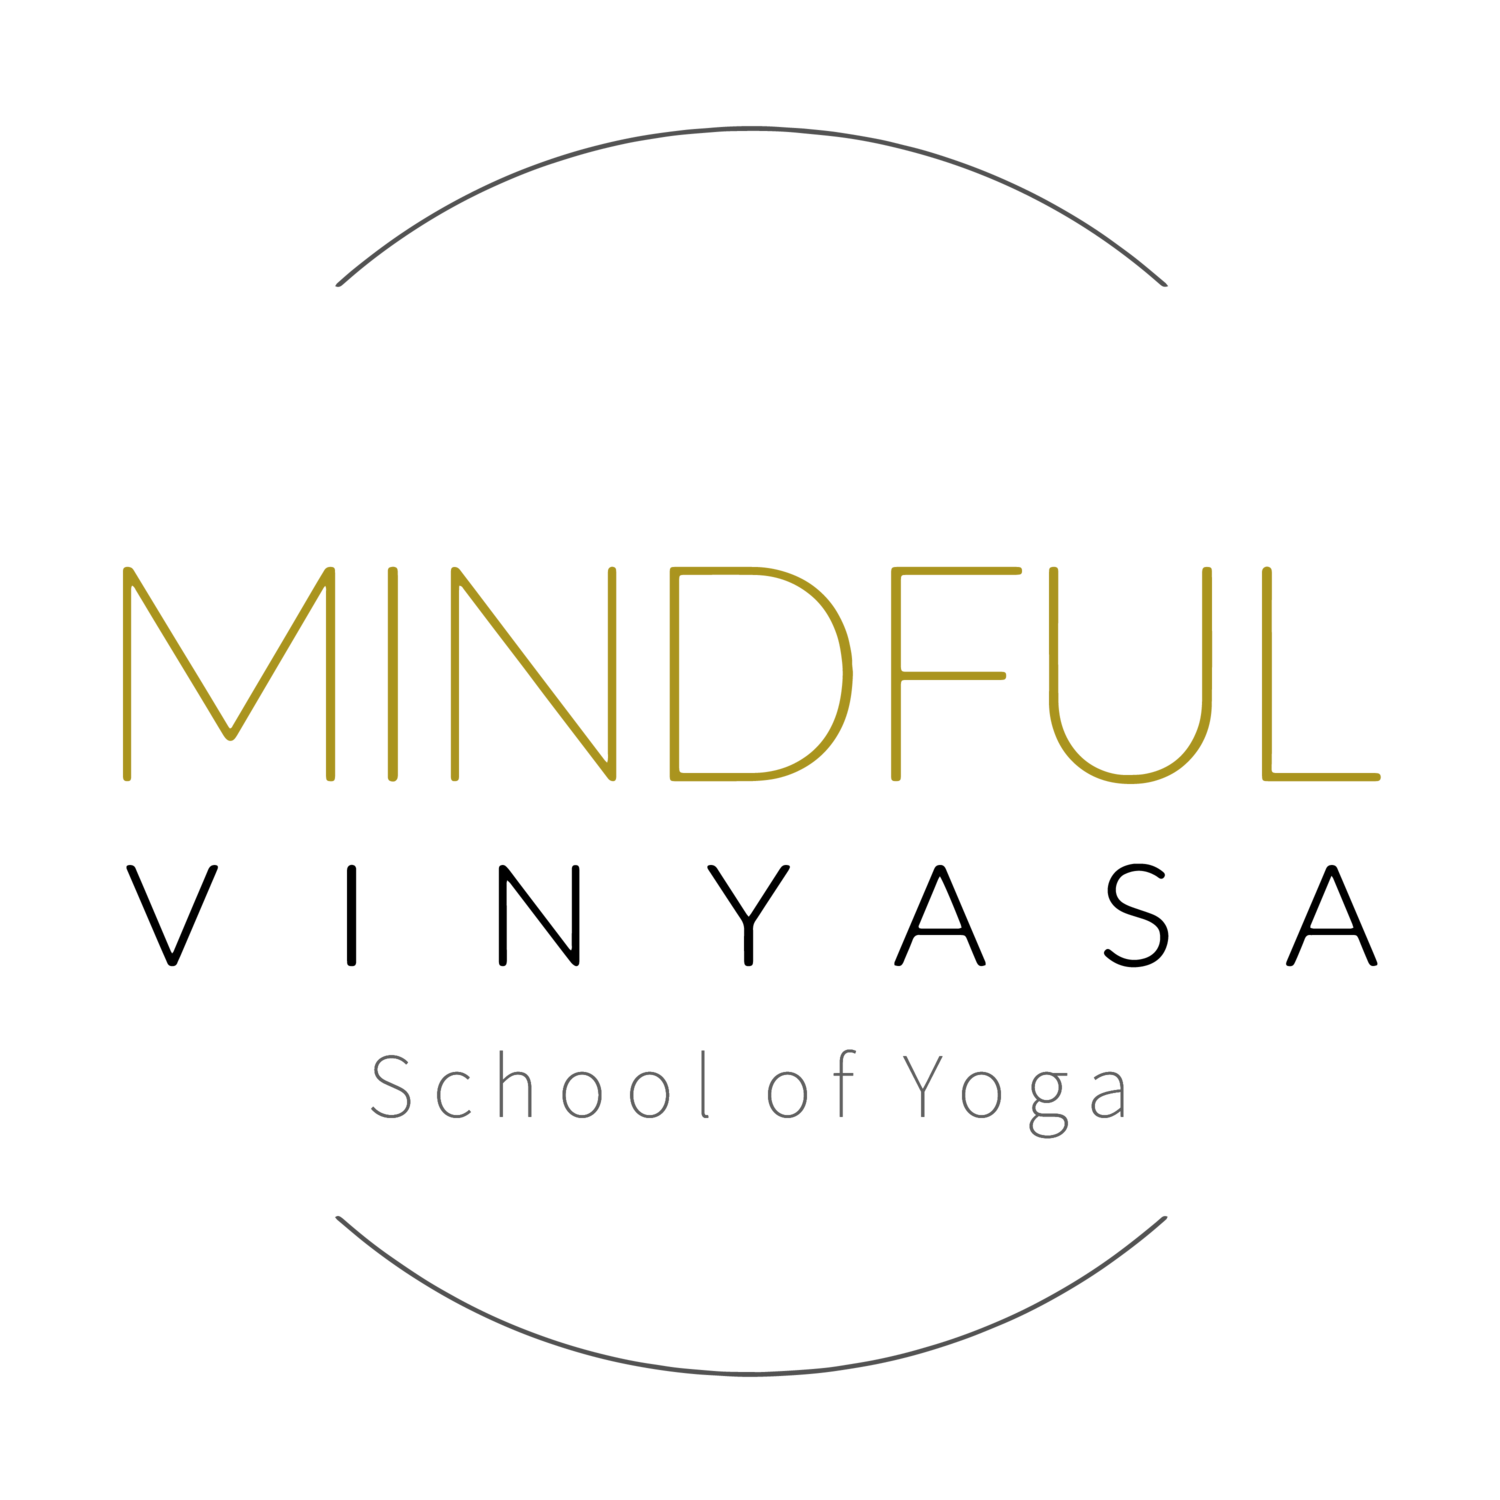 Mindful Vinyasa School of Yoga